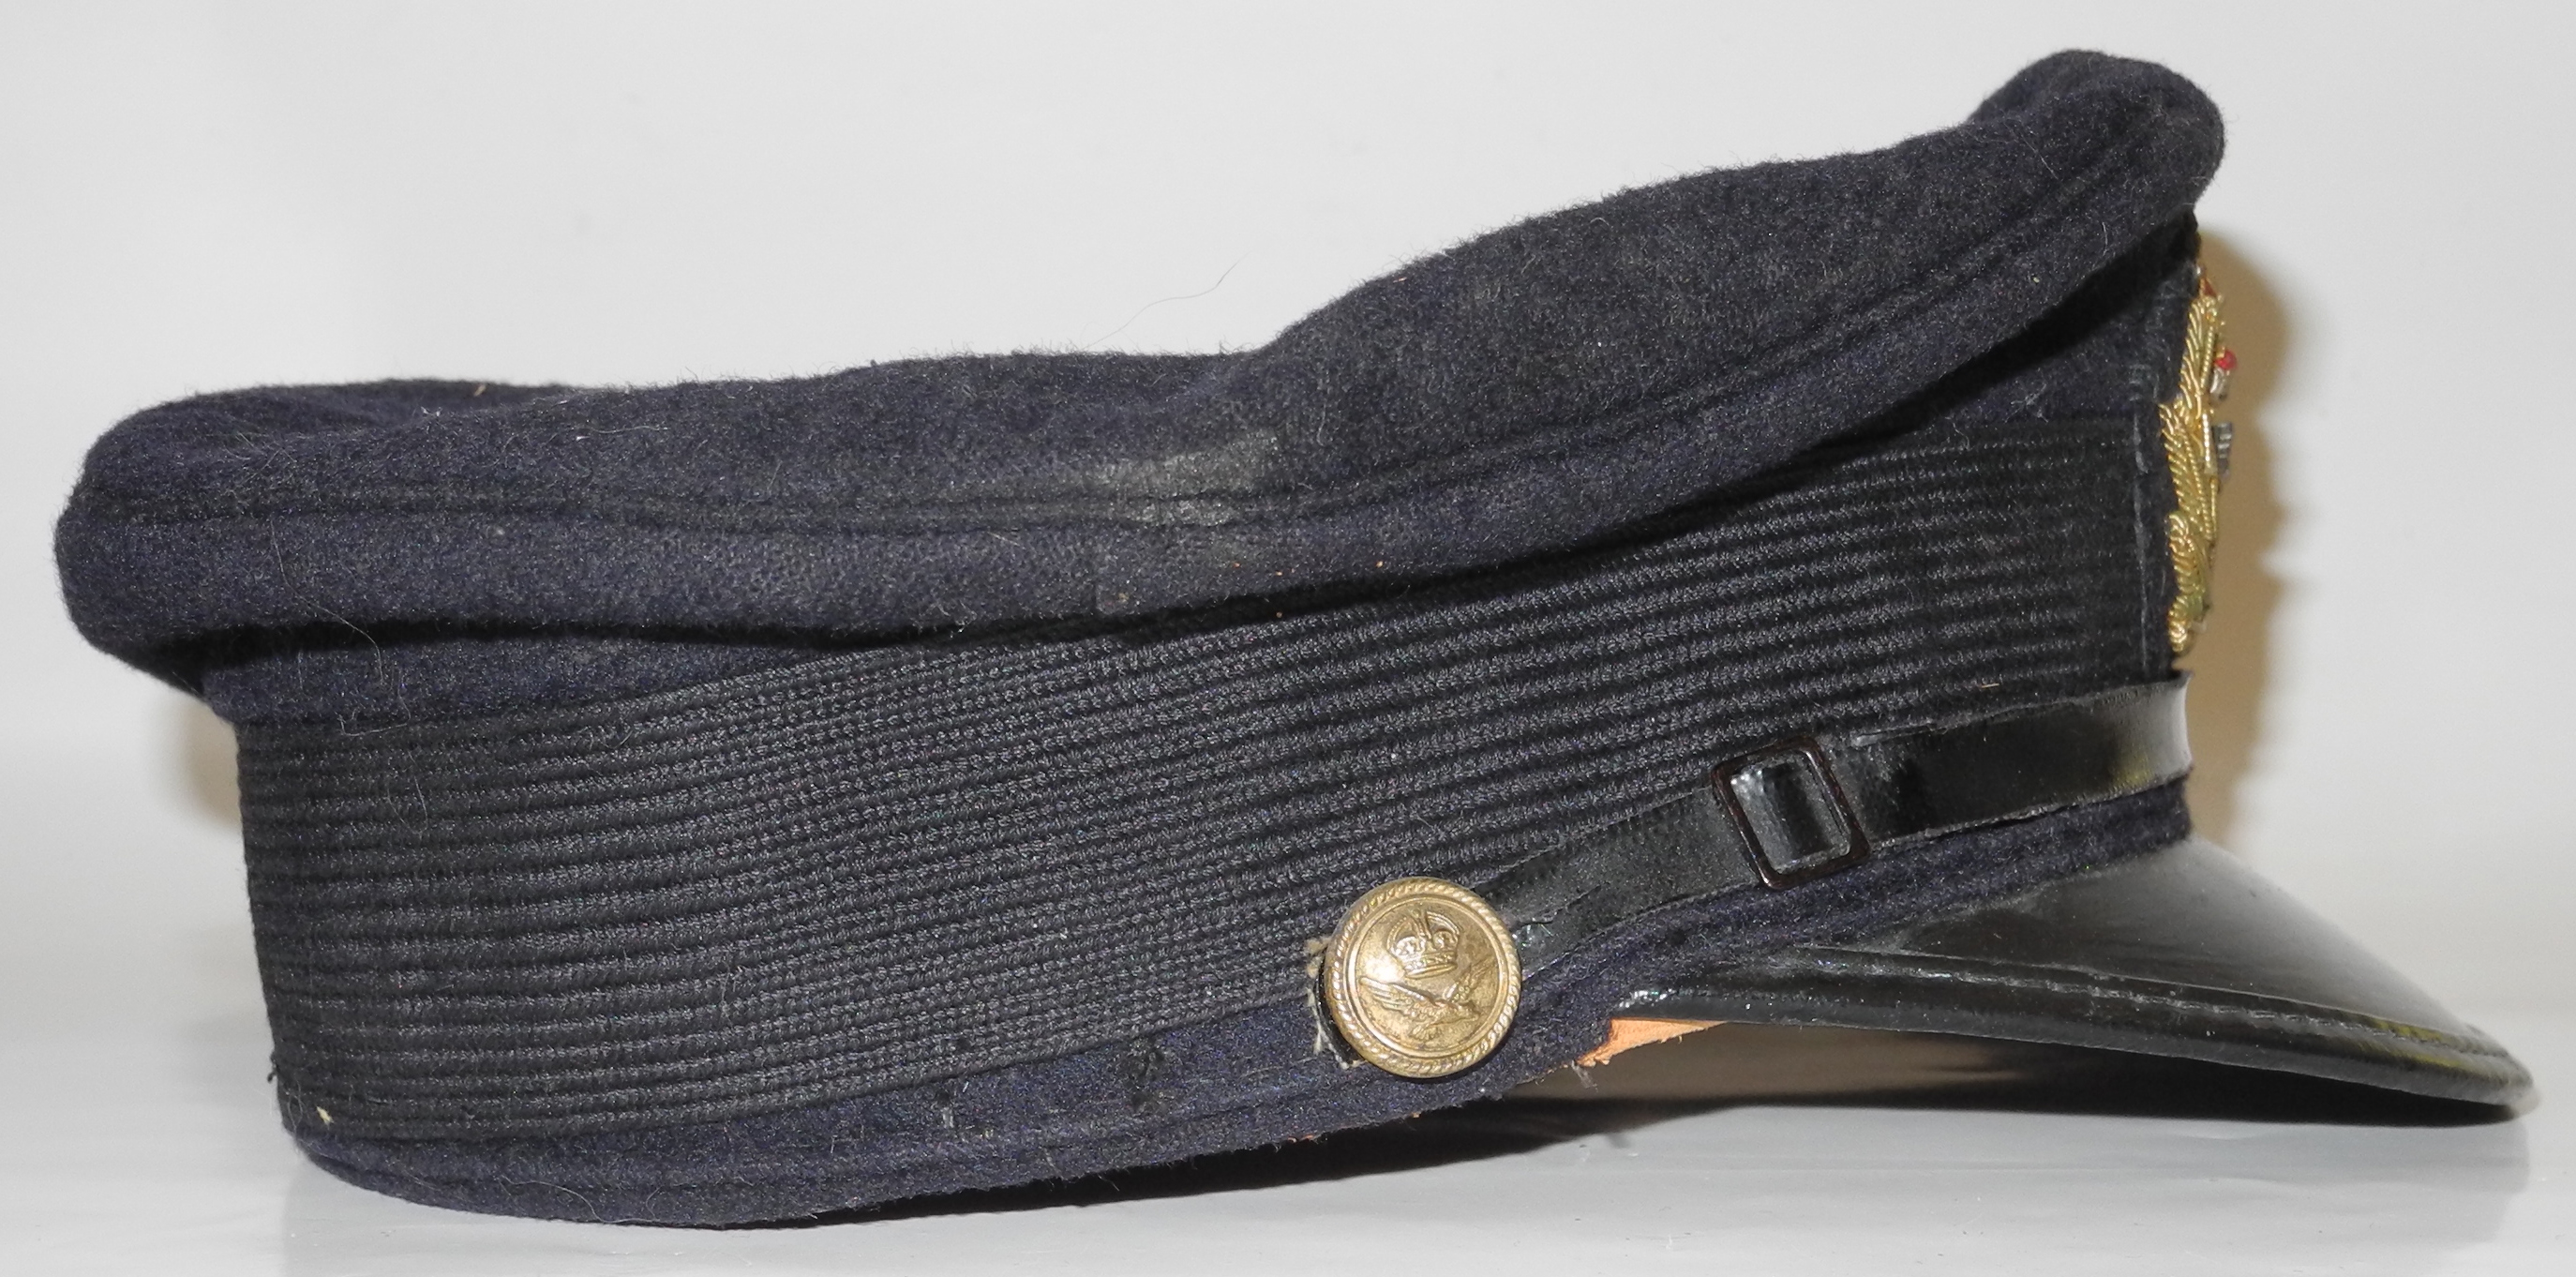 RNAS officer's cap with reproduction badge